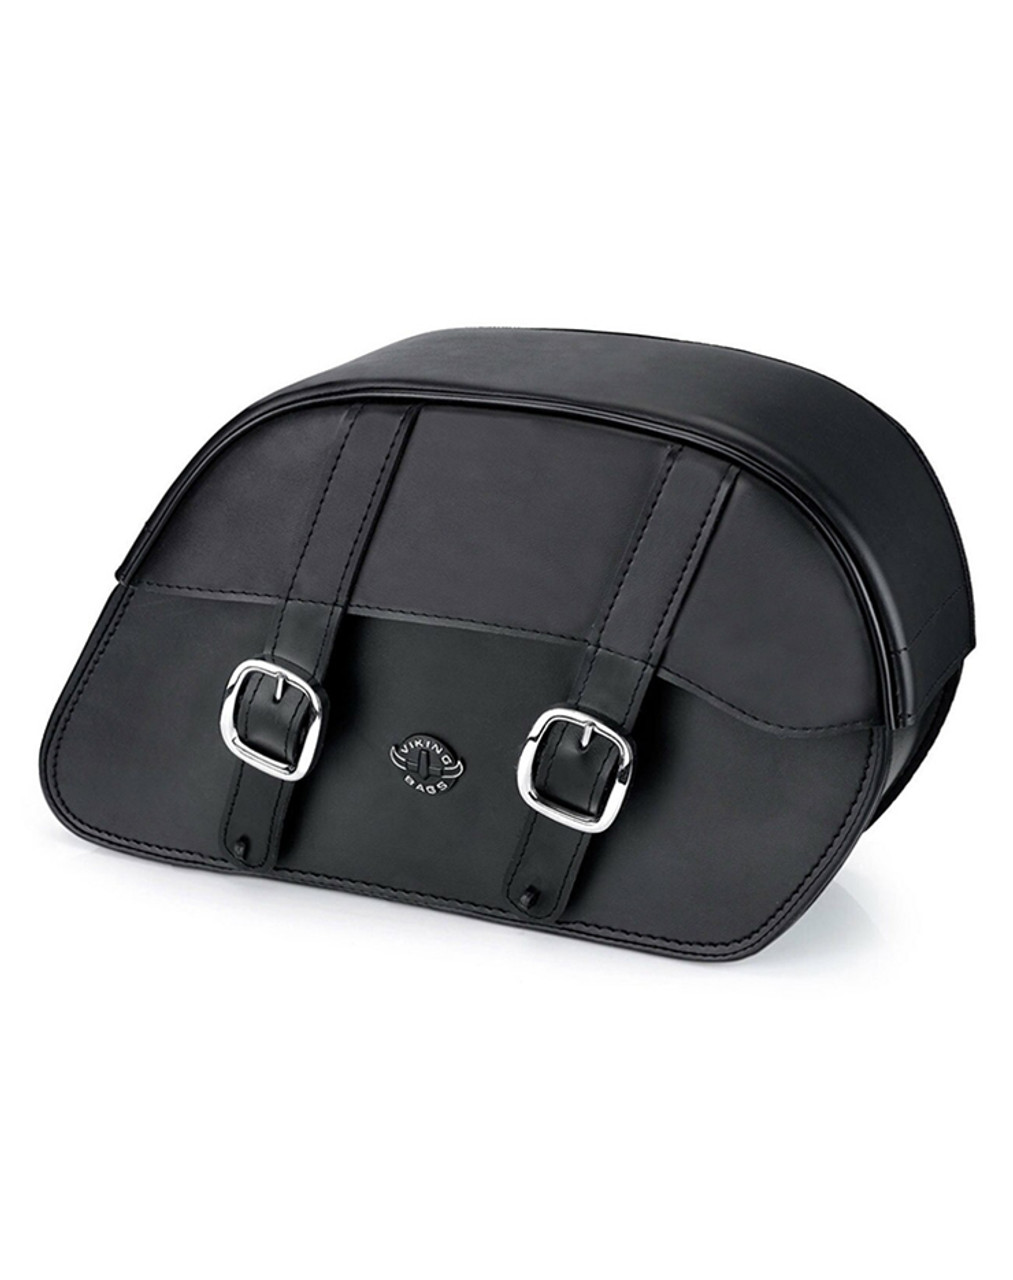 Indian Scout Sixty Slanted Large Motorcycle Saddlebags Bag View